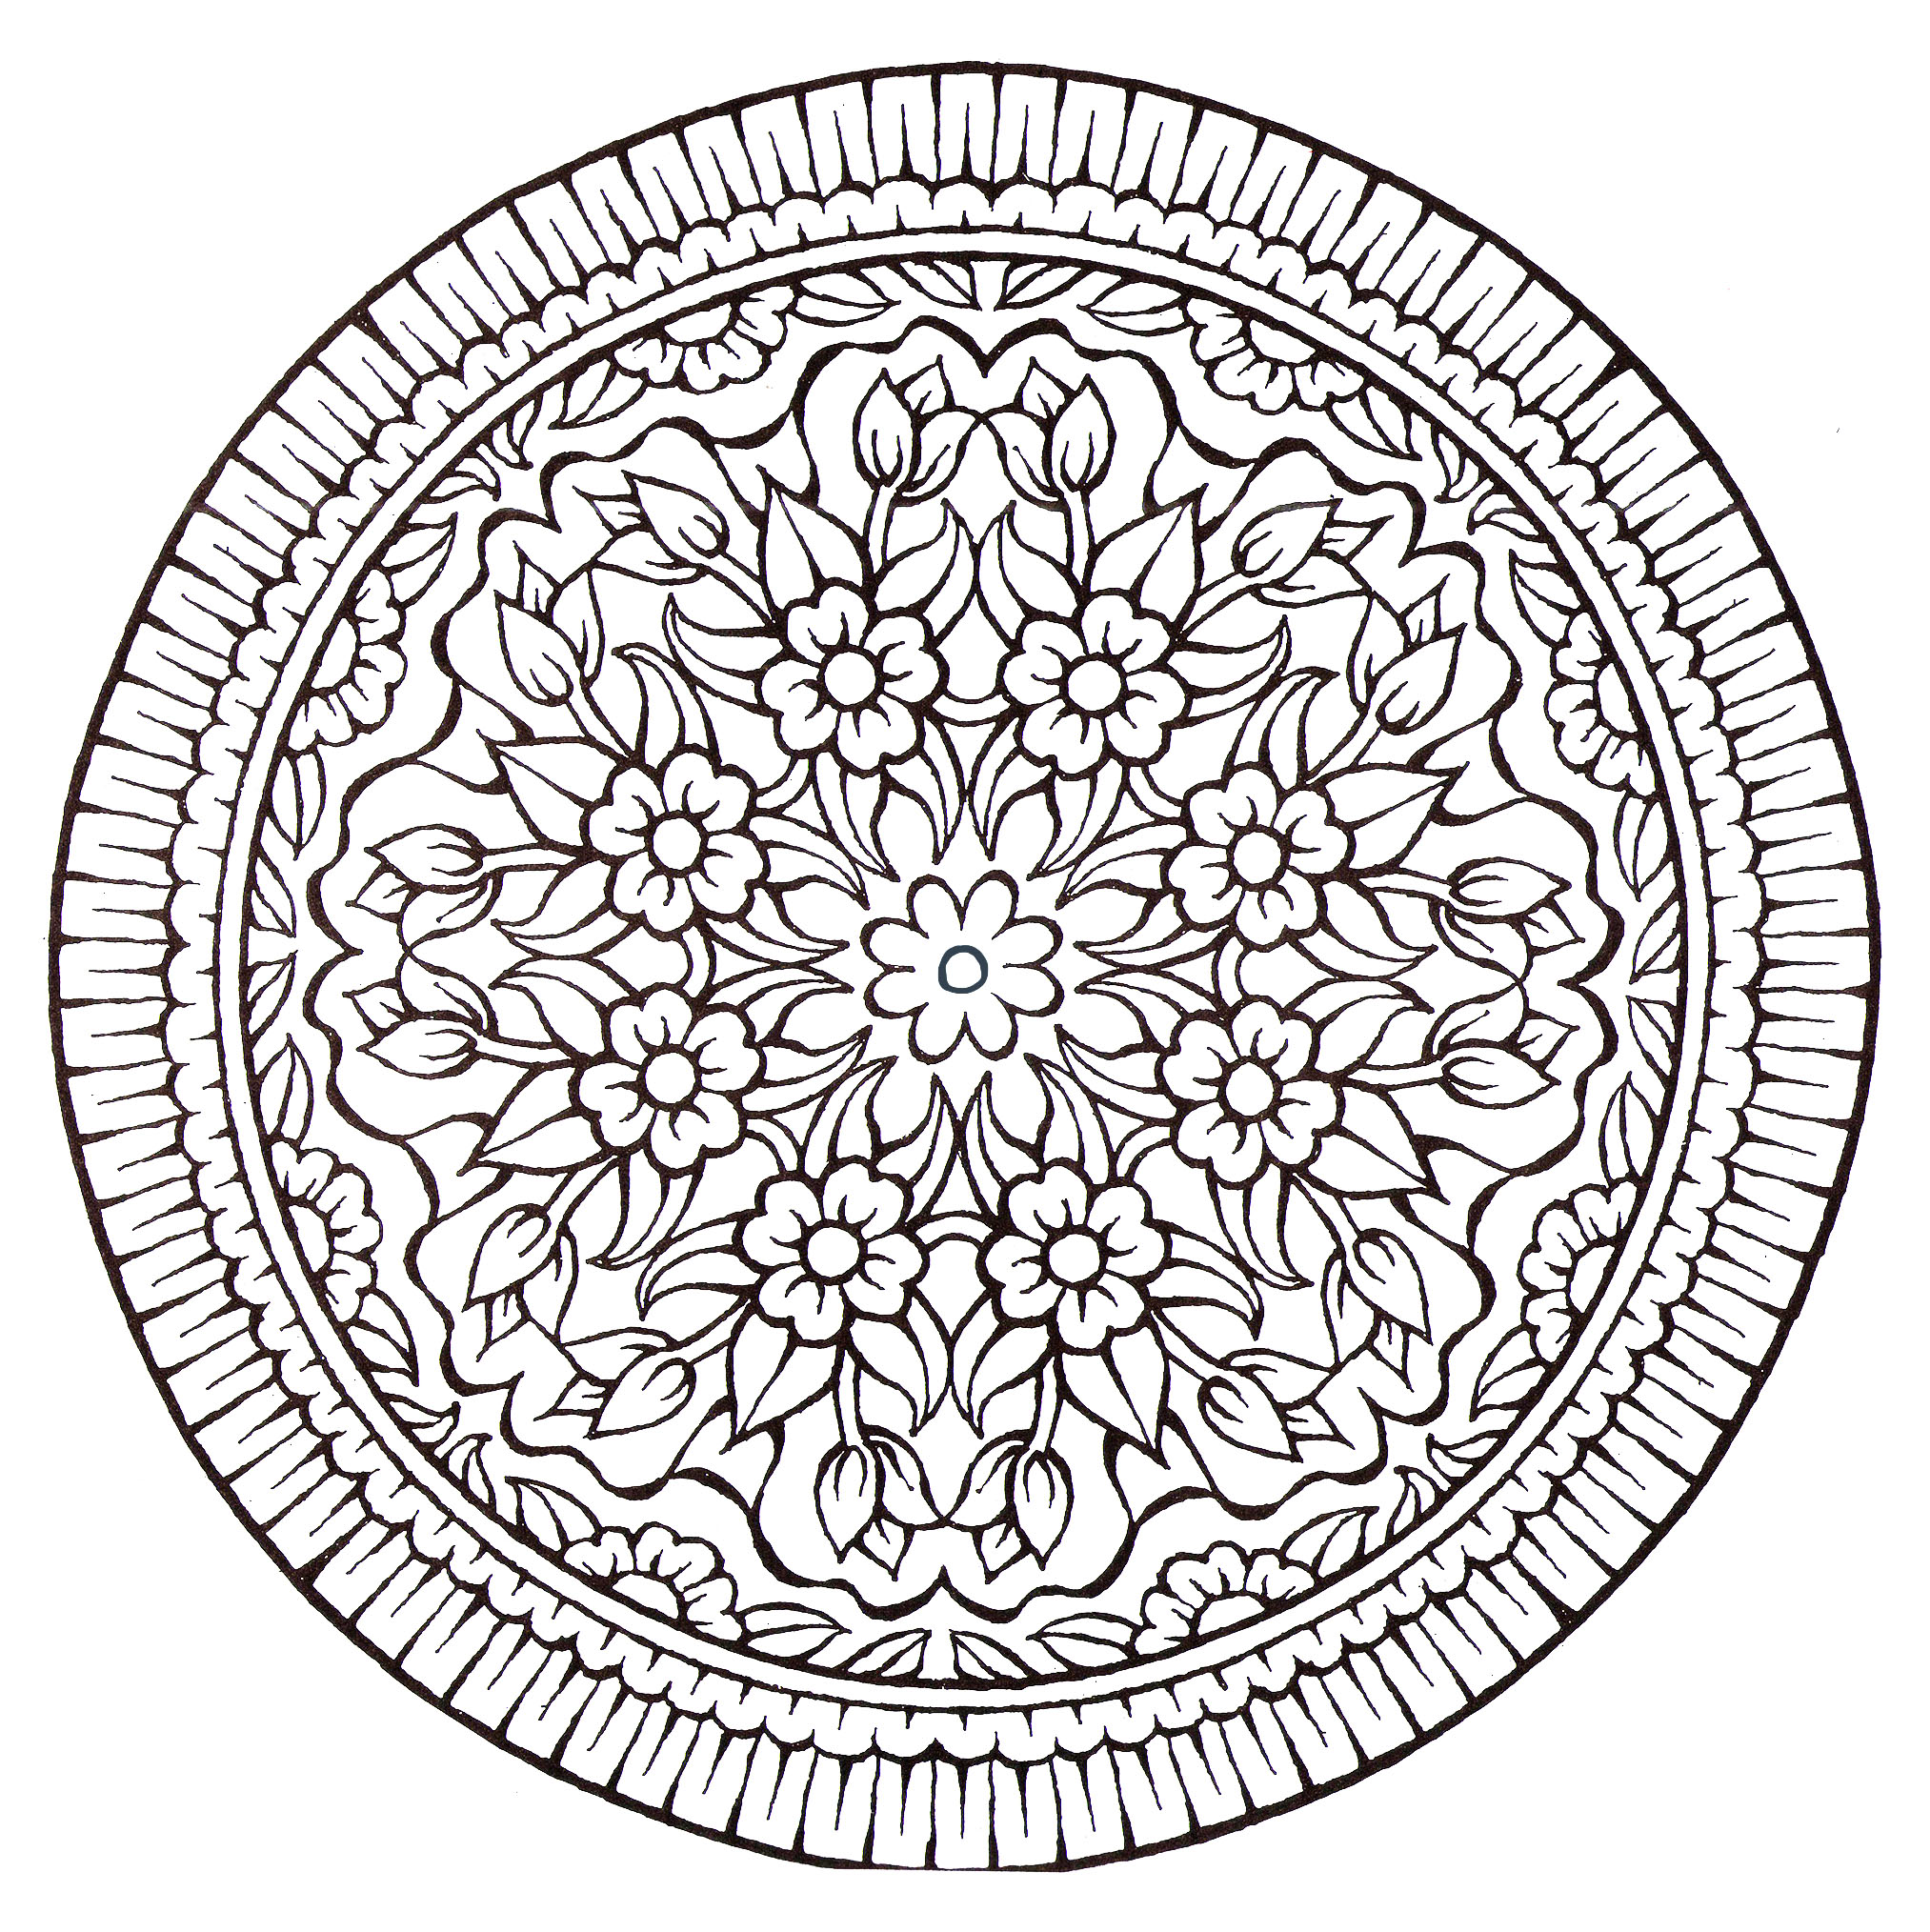 The plant elements often marry very well with the Mandalas, it is the case with this coloring page of a great originality.